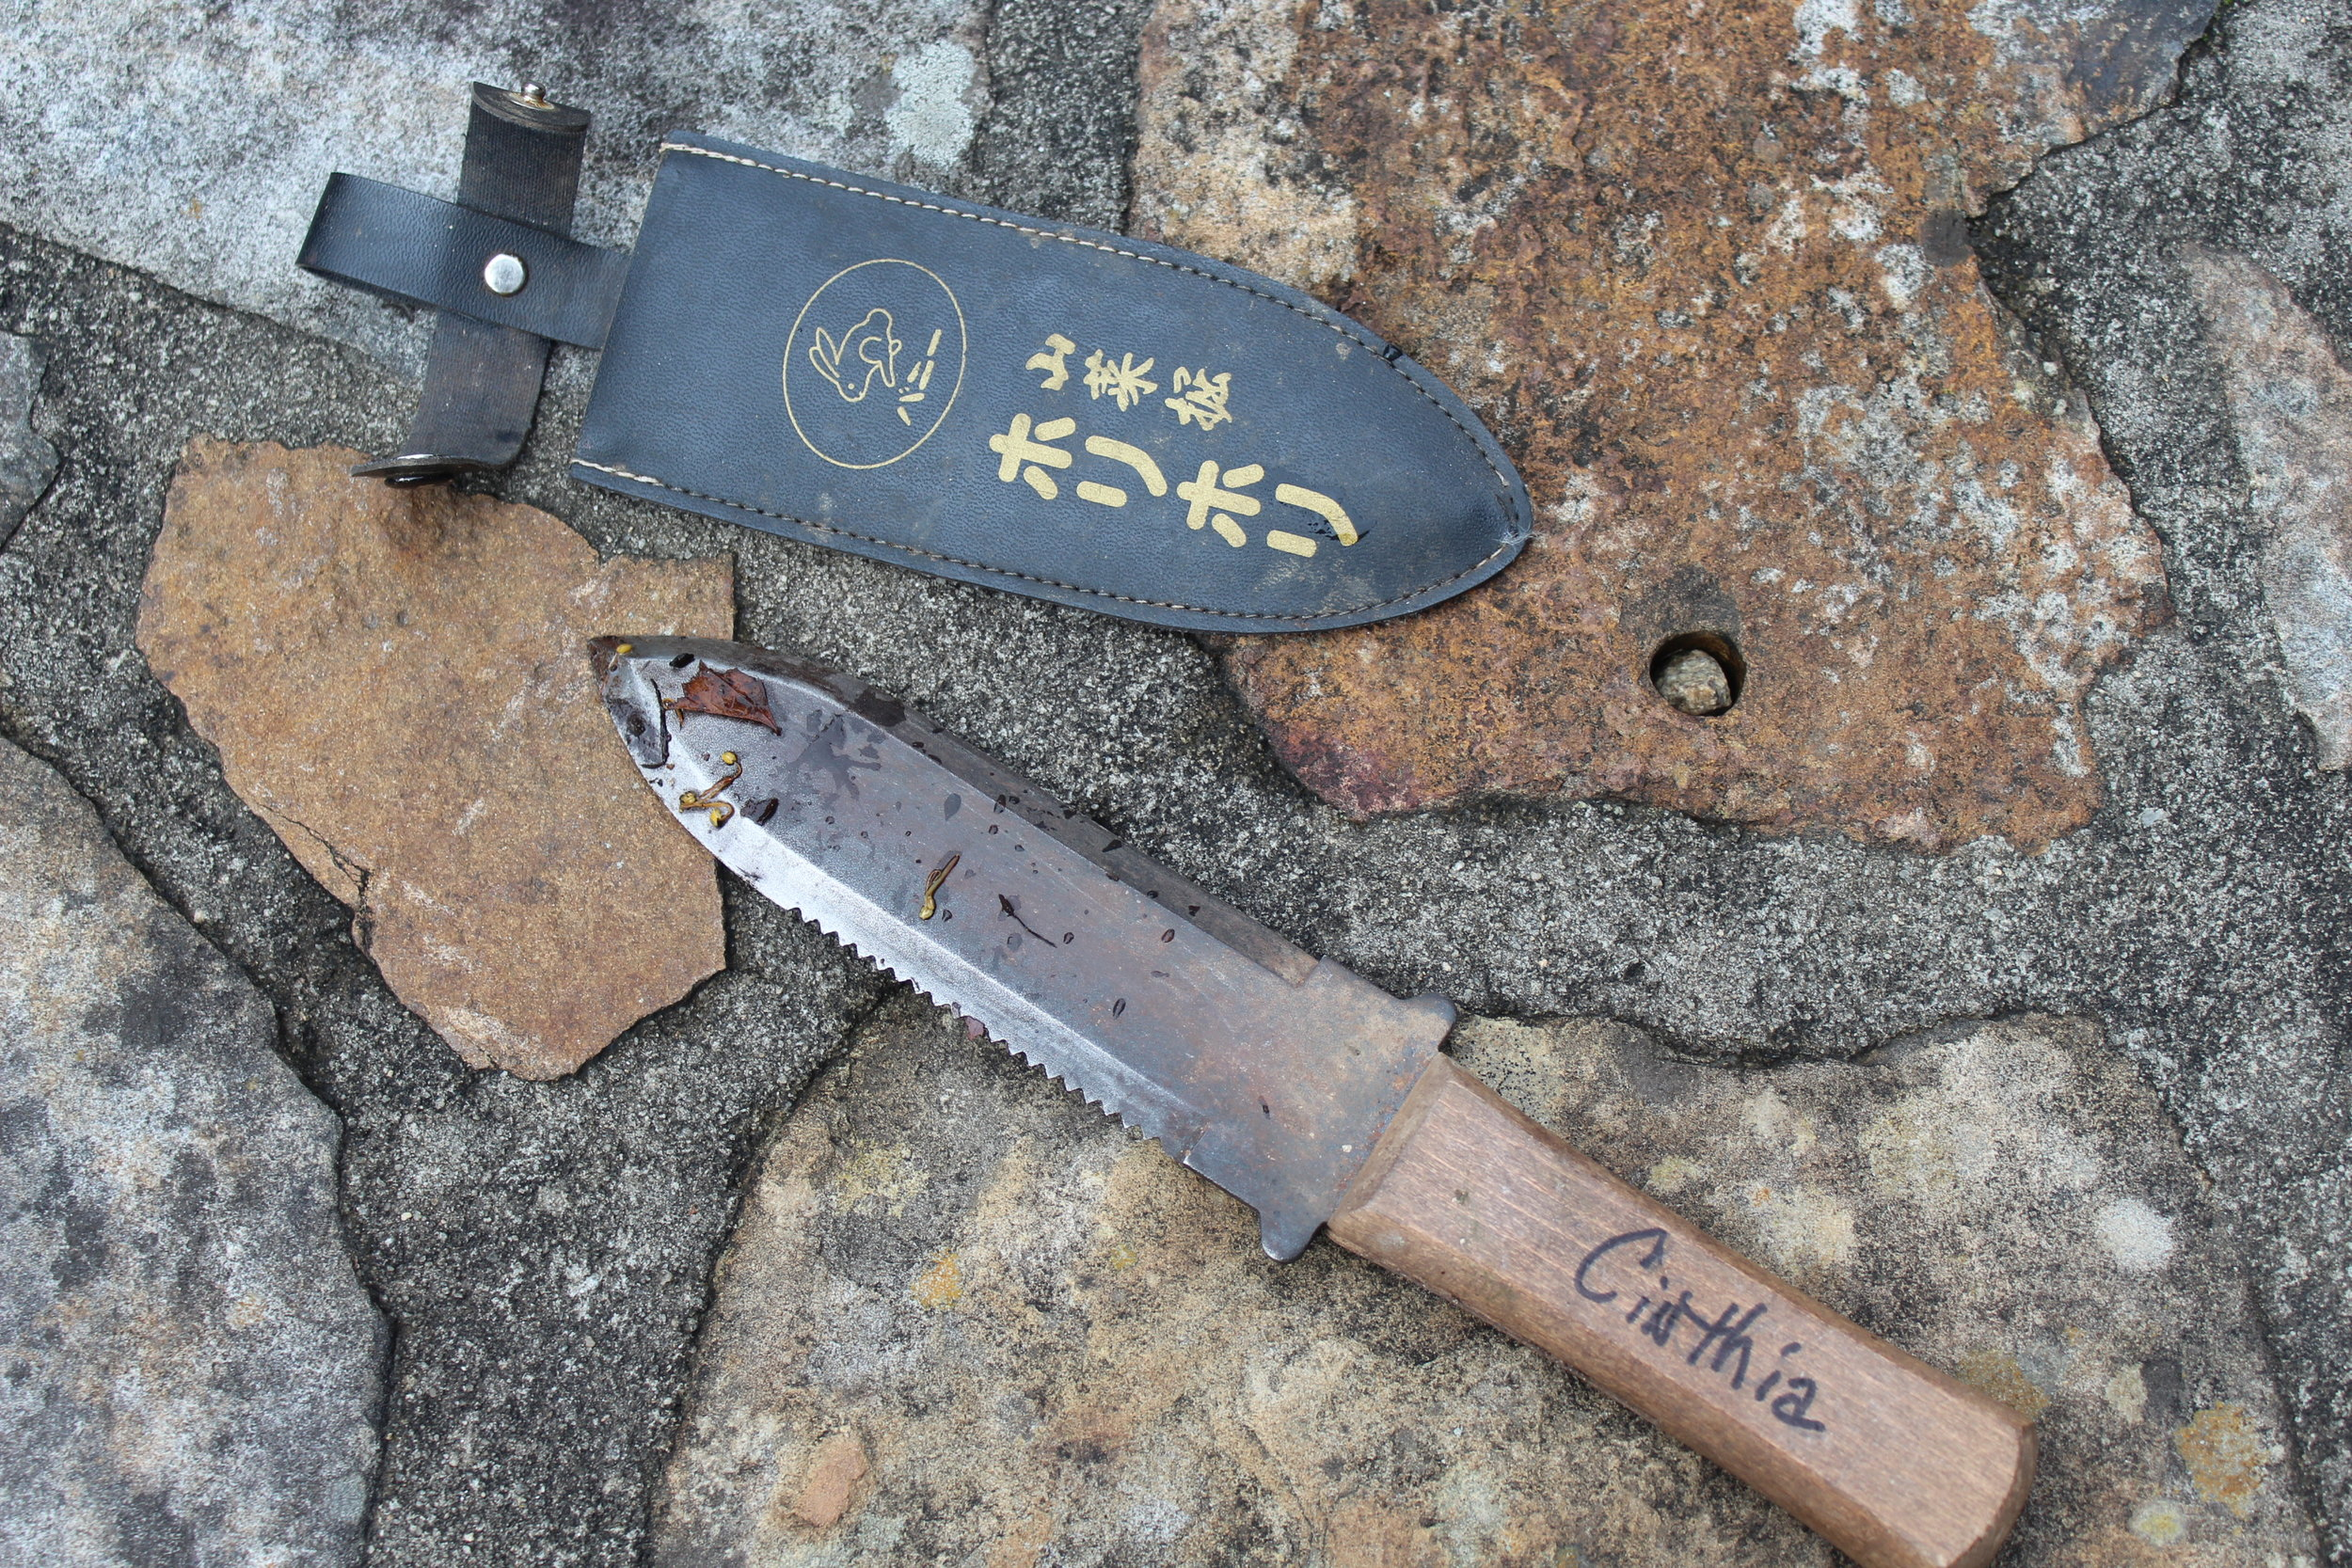 Hori-Hori knife means to dig in Japanese. A simple knife,  but the most versatile tool in the garden shed,